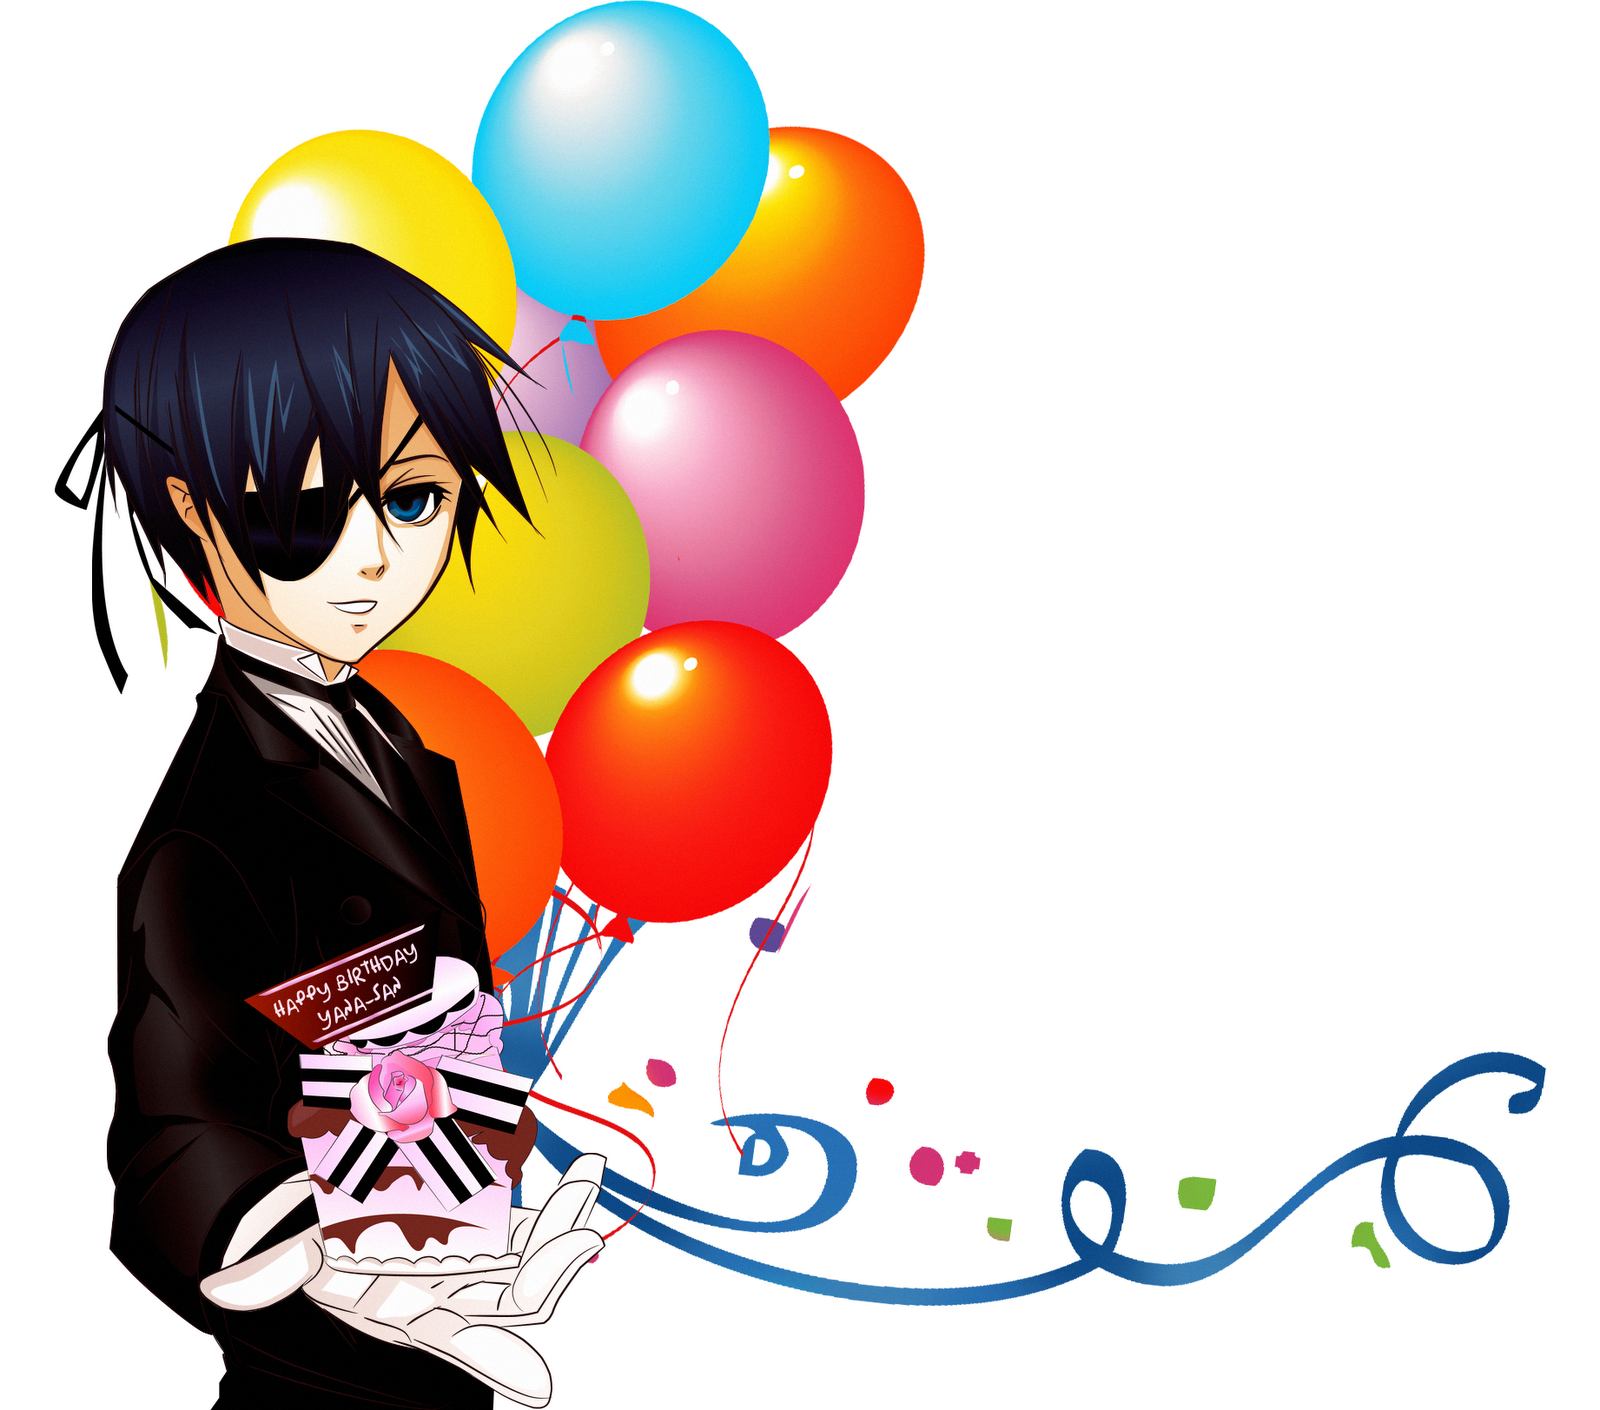 Boy with balloons wishing Birthday. 1600 x 1410.Birthday Wishes Thank You Messages To Friends